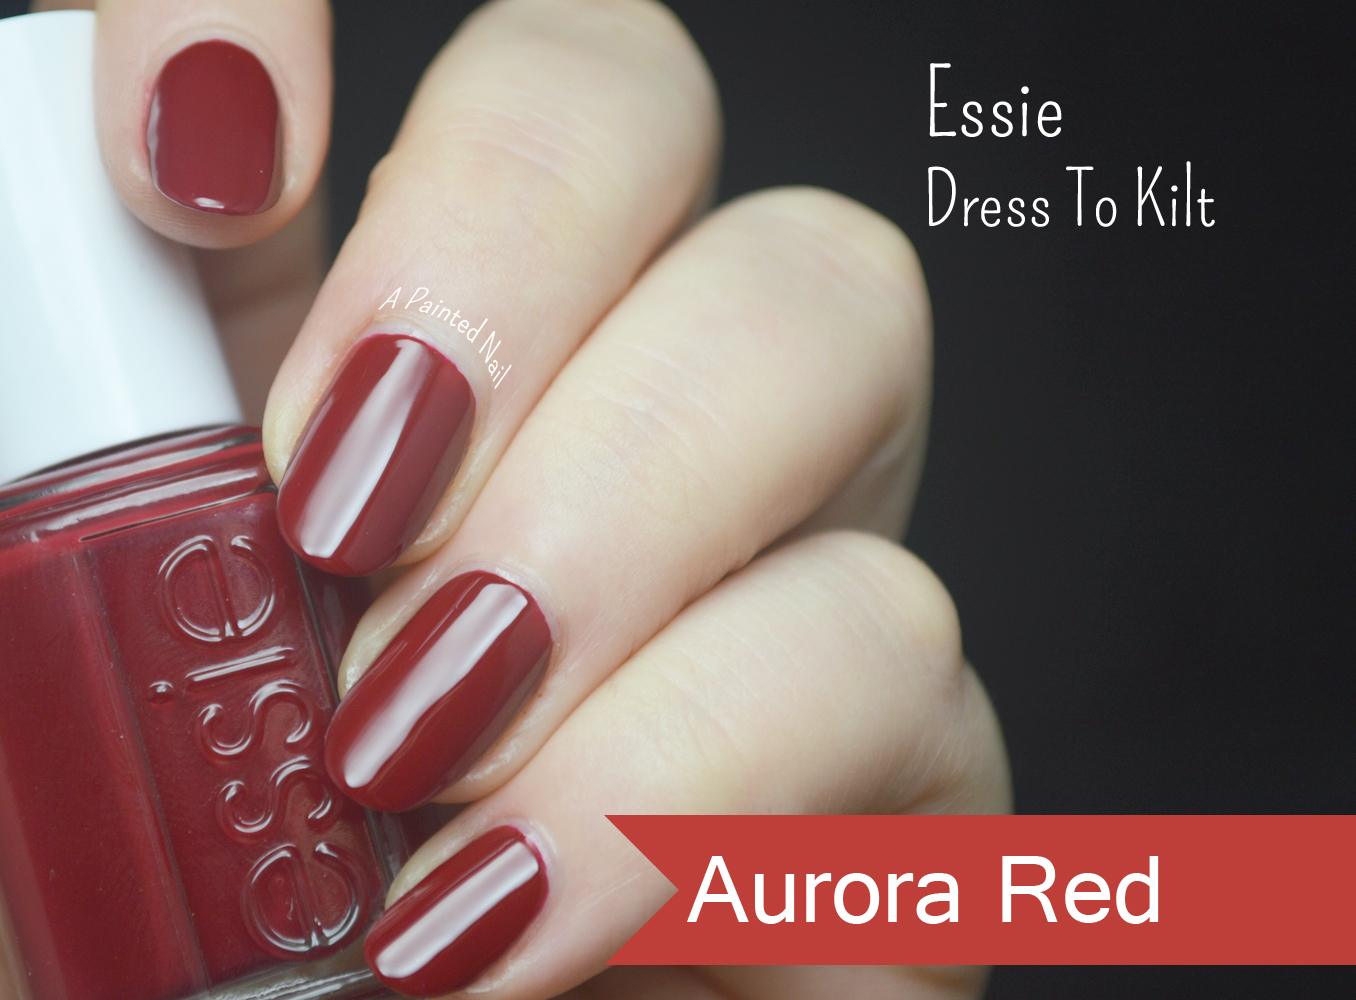 A Painted Nail: Essie Dress To Kilt Fall/Winter 2014 Color